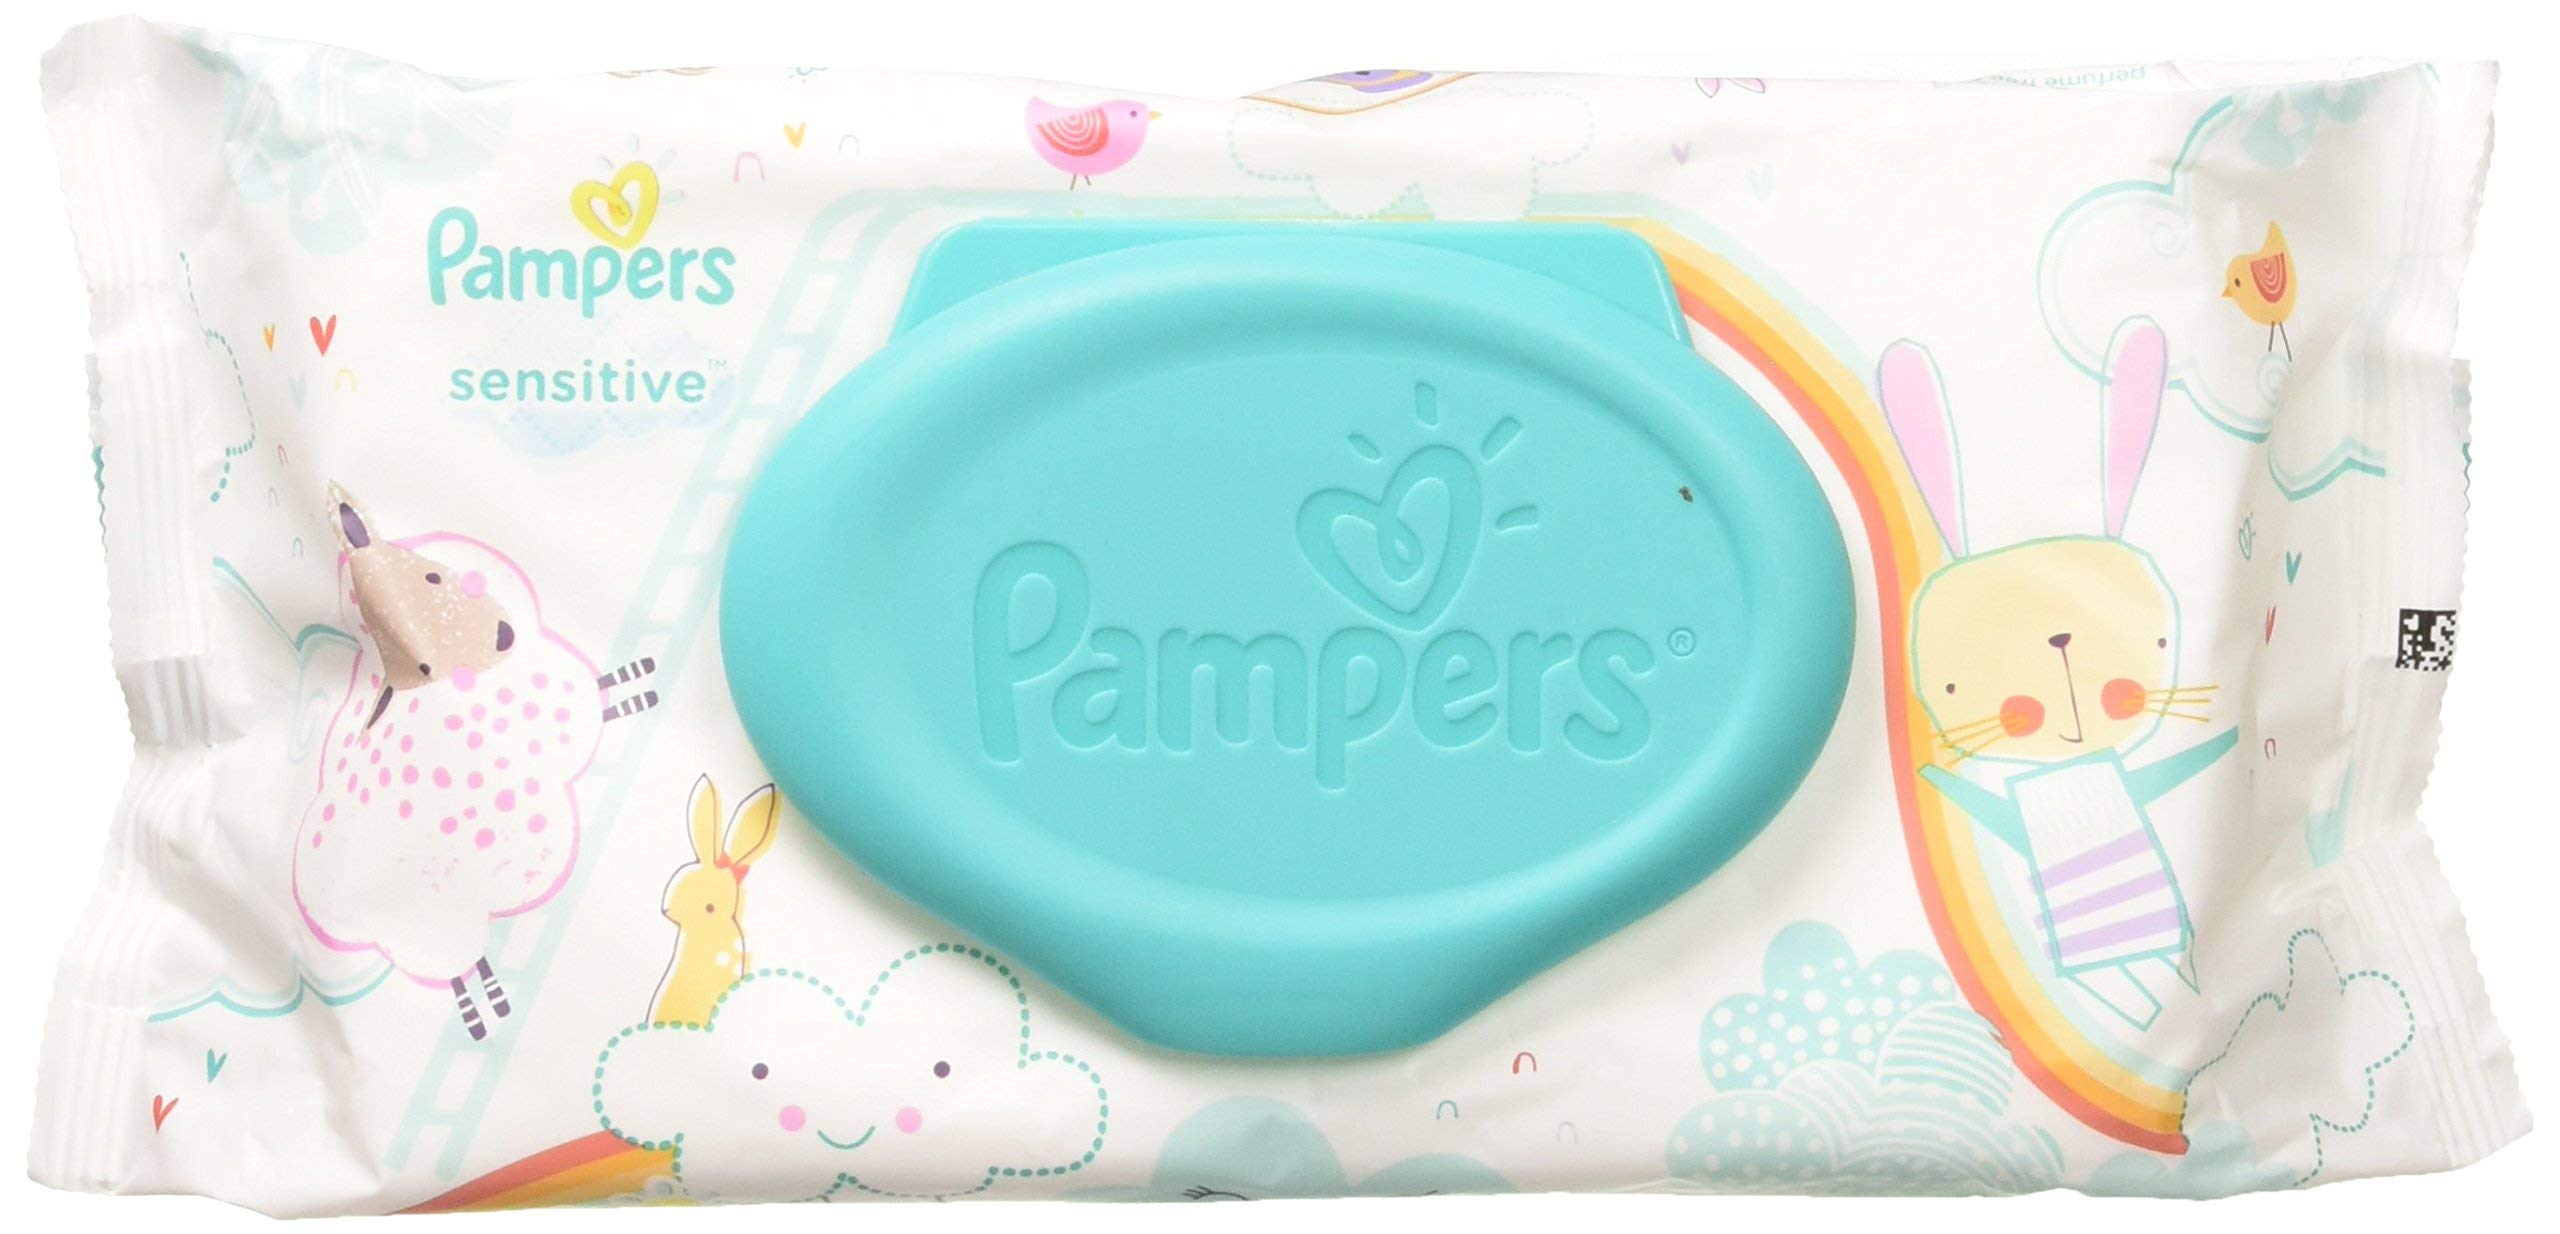 Pampers Sensitive Wipes Travel Pack 56 Count (Pack of 6) by Pampers